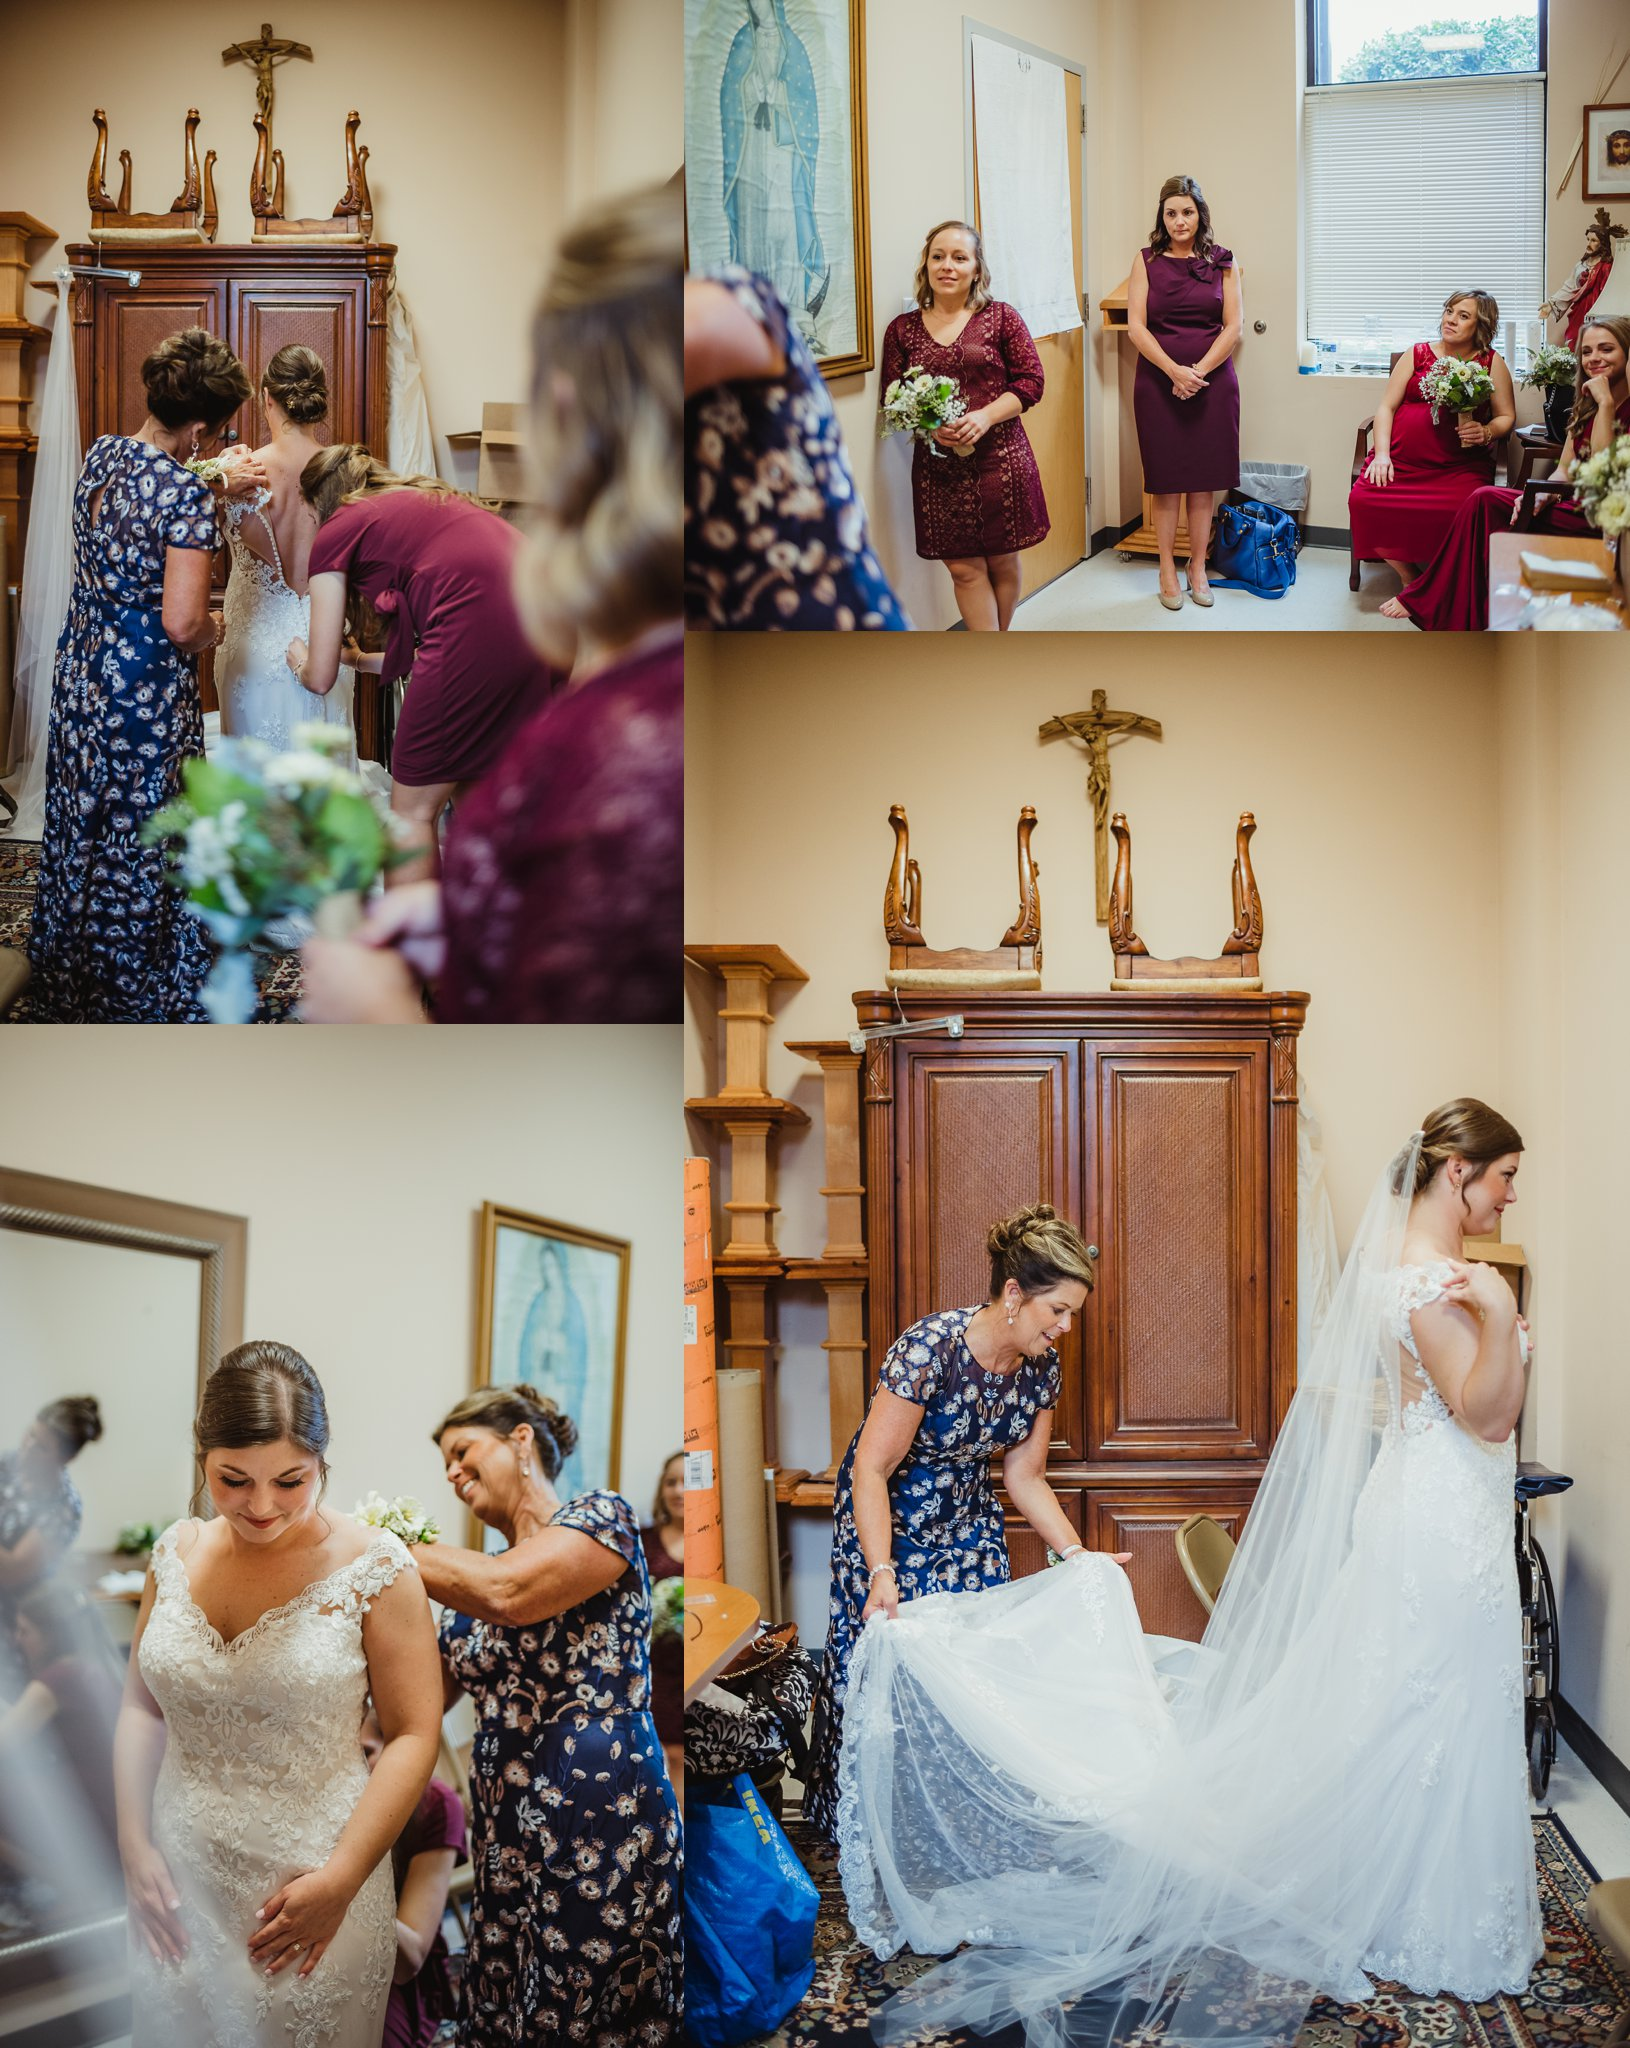 The bride gets dressed before her wedding ceremony at Saint Bernadette's Catholic Church in Fuquay Varina, North Carolina. Photo by Rose Trail Images.